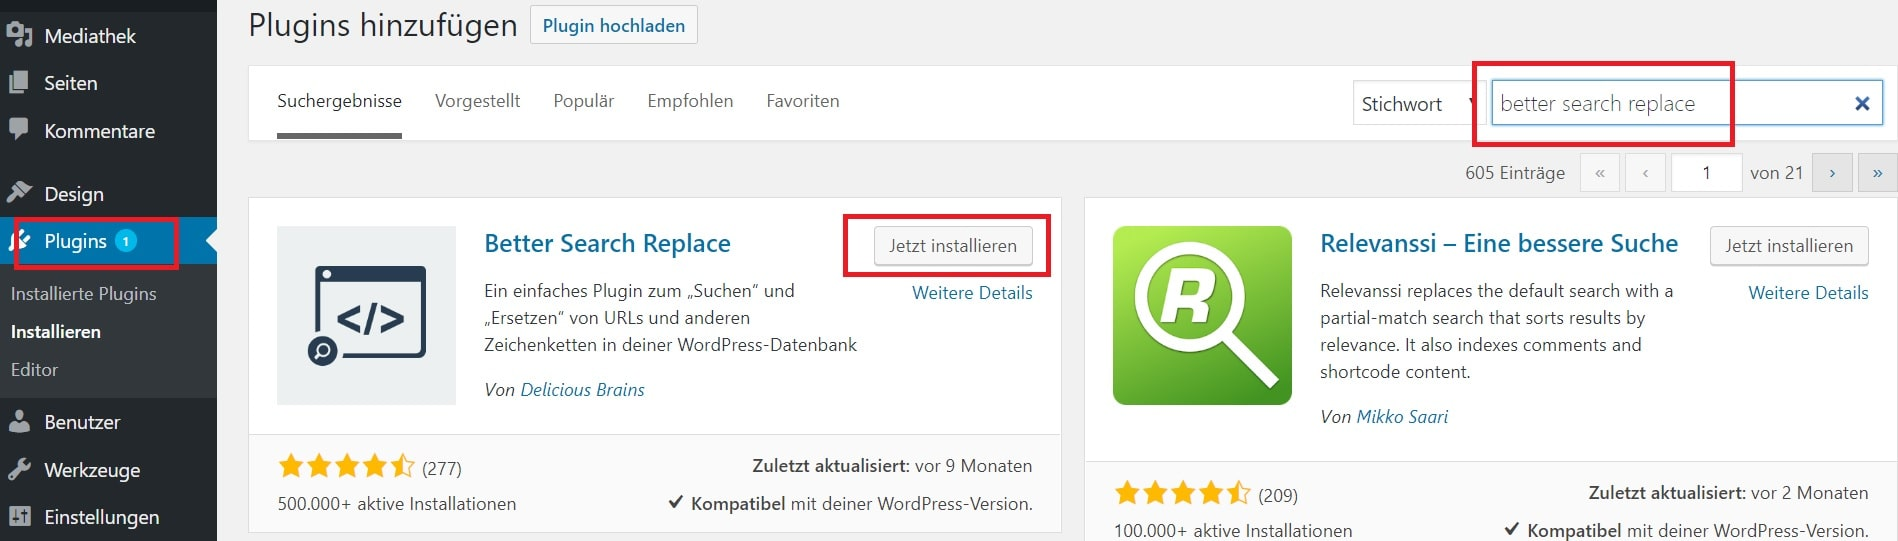 Wordpress auf HTTPS umstellen - better search replace downloaden